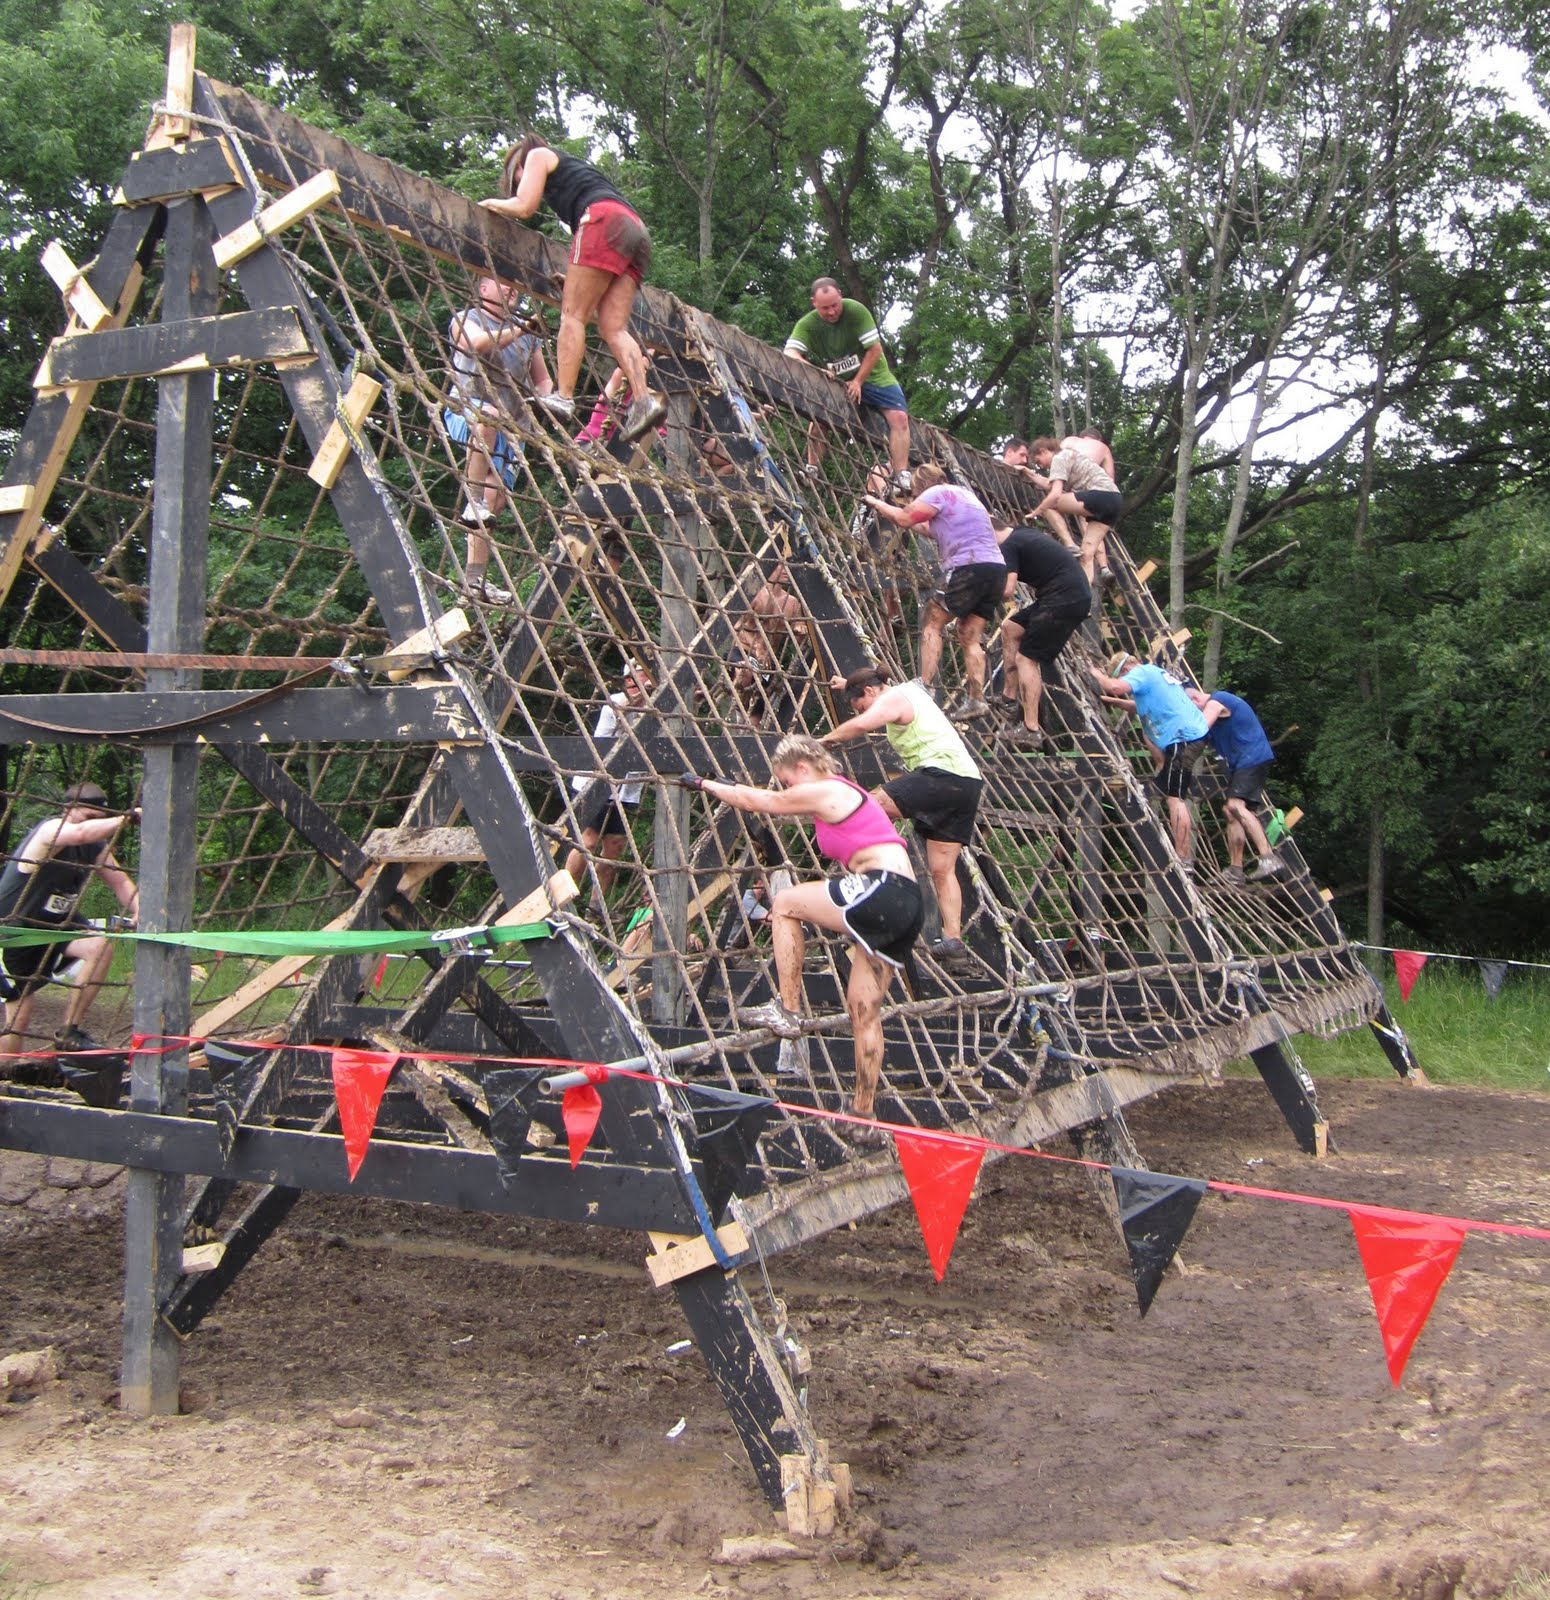 Tru Stories From The 222nd Floor: Warrior Dash: Eye Of The